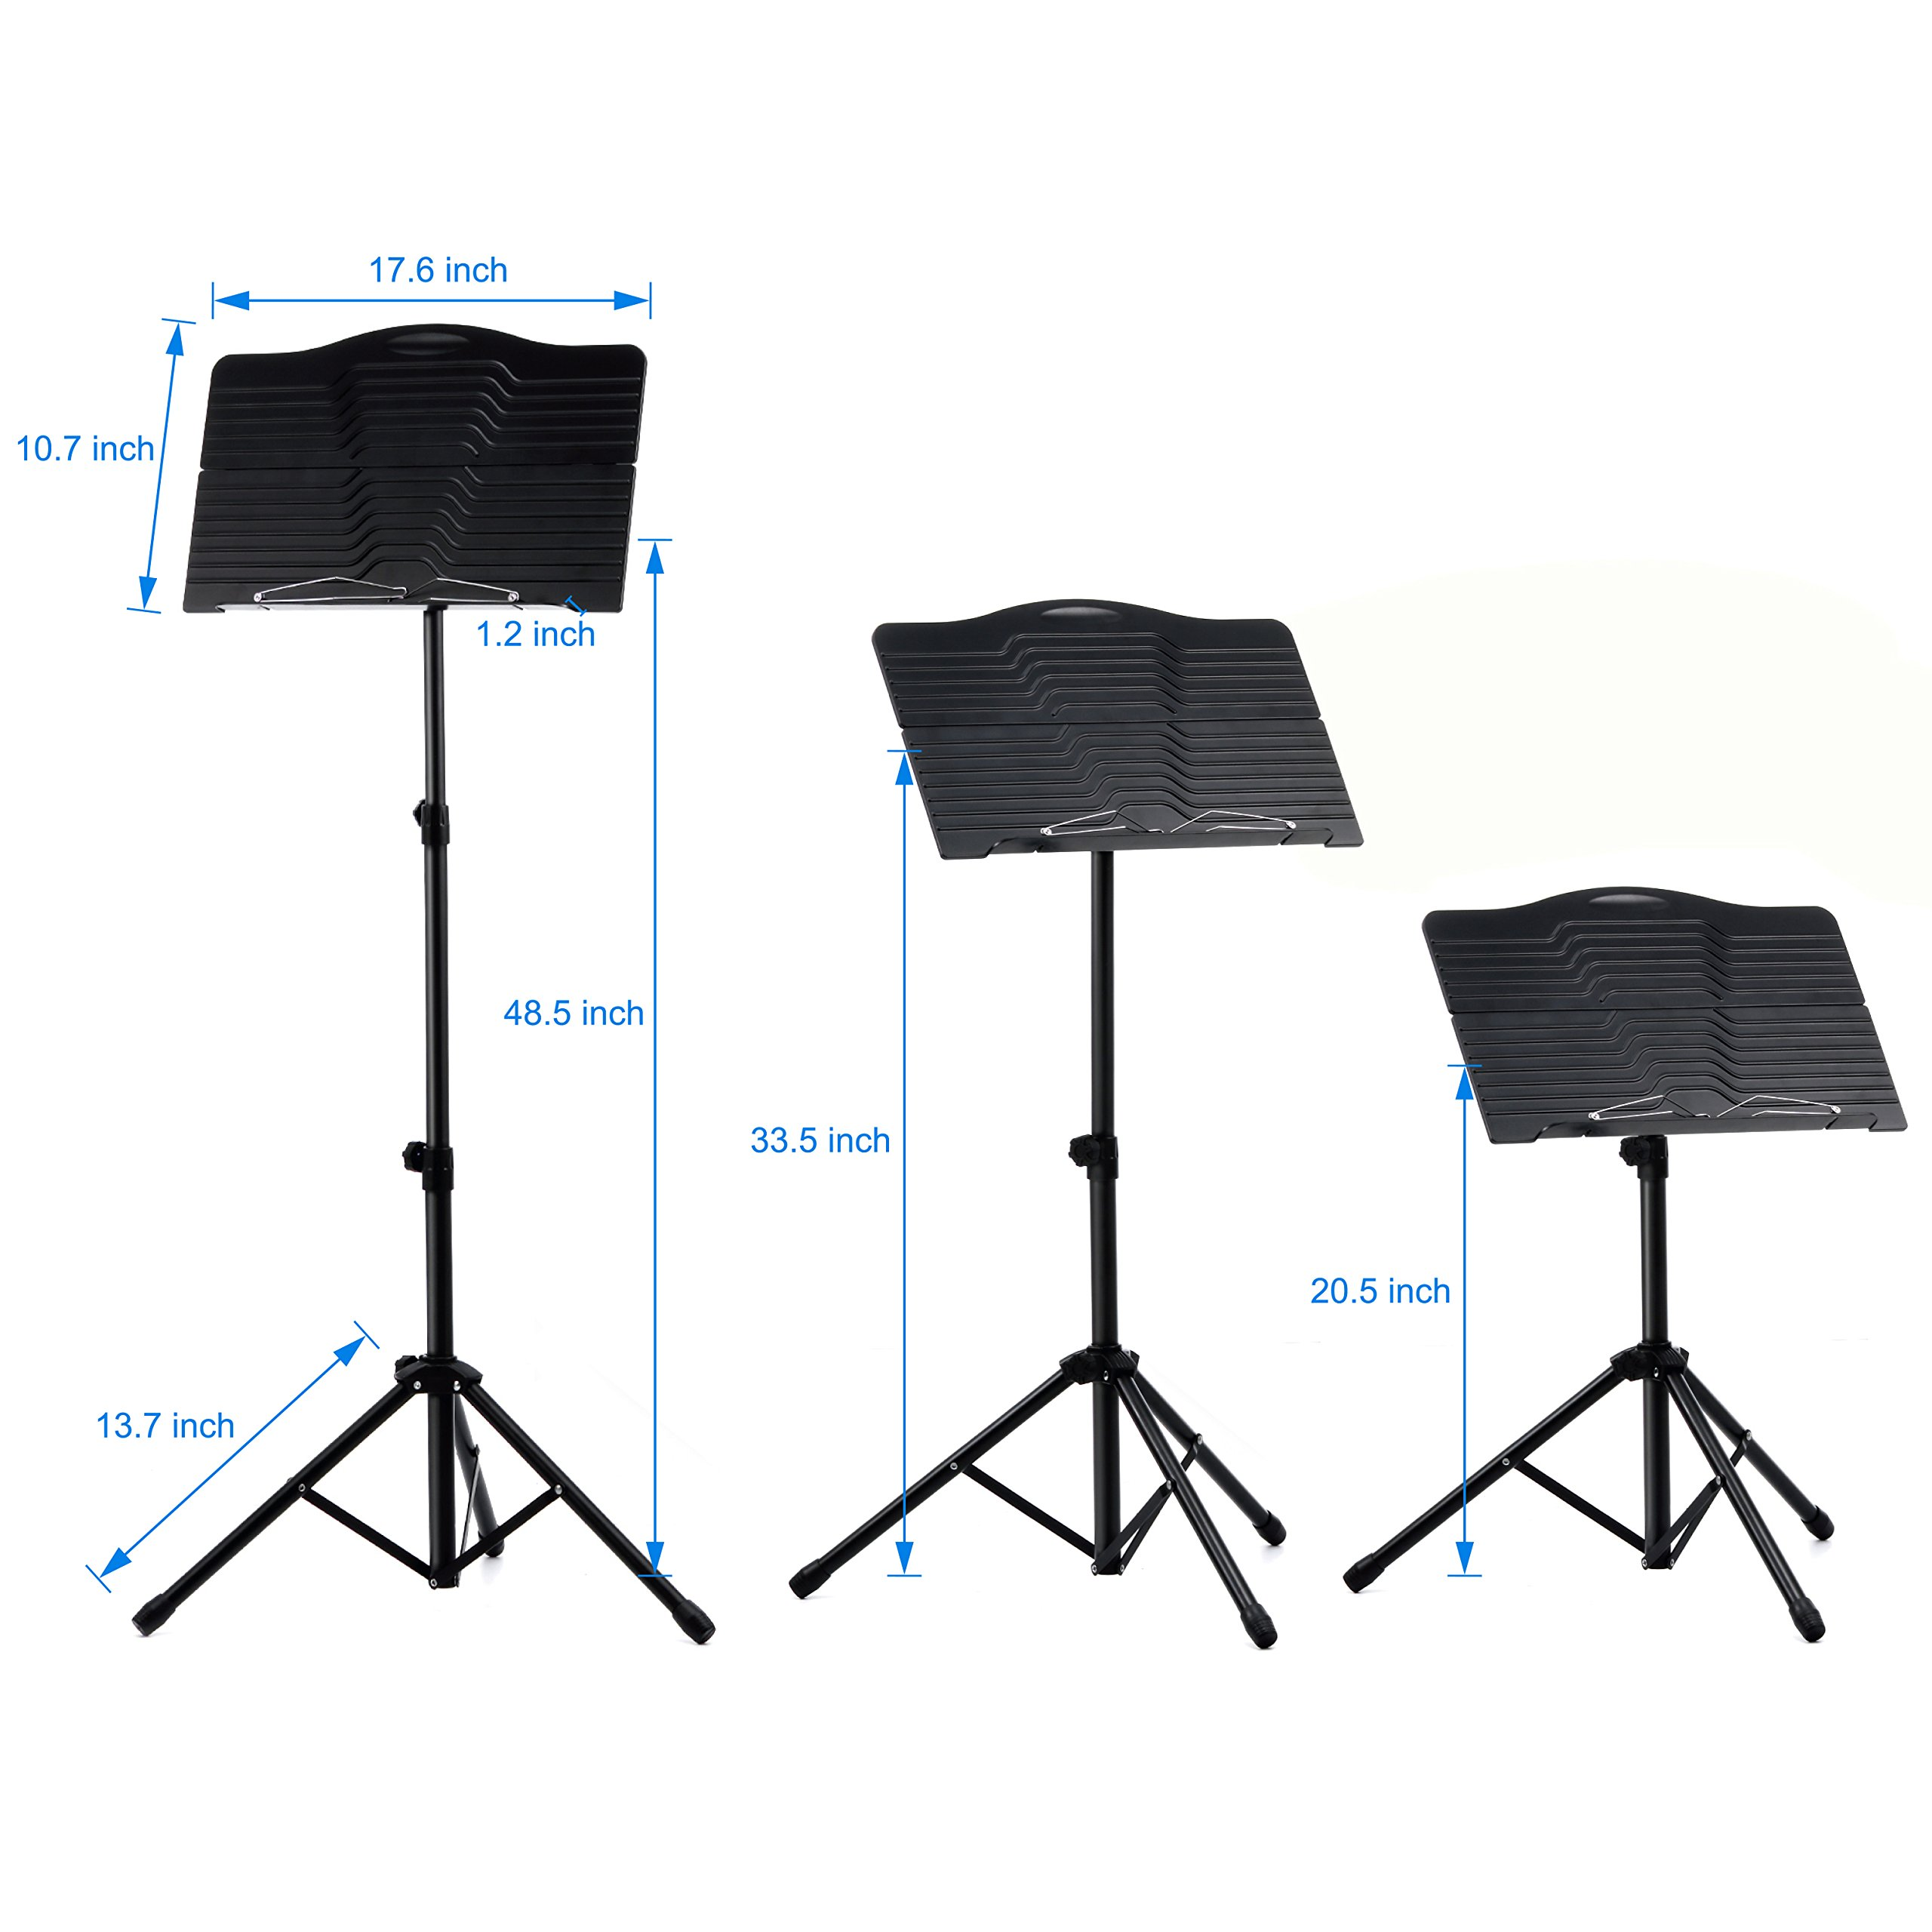 Donner Sheet Music Stand DMS-1 Folding Travel Metal Music Stand With Carrying Bag by Donner (Image #7)